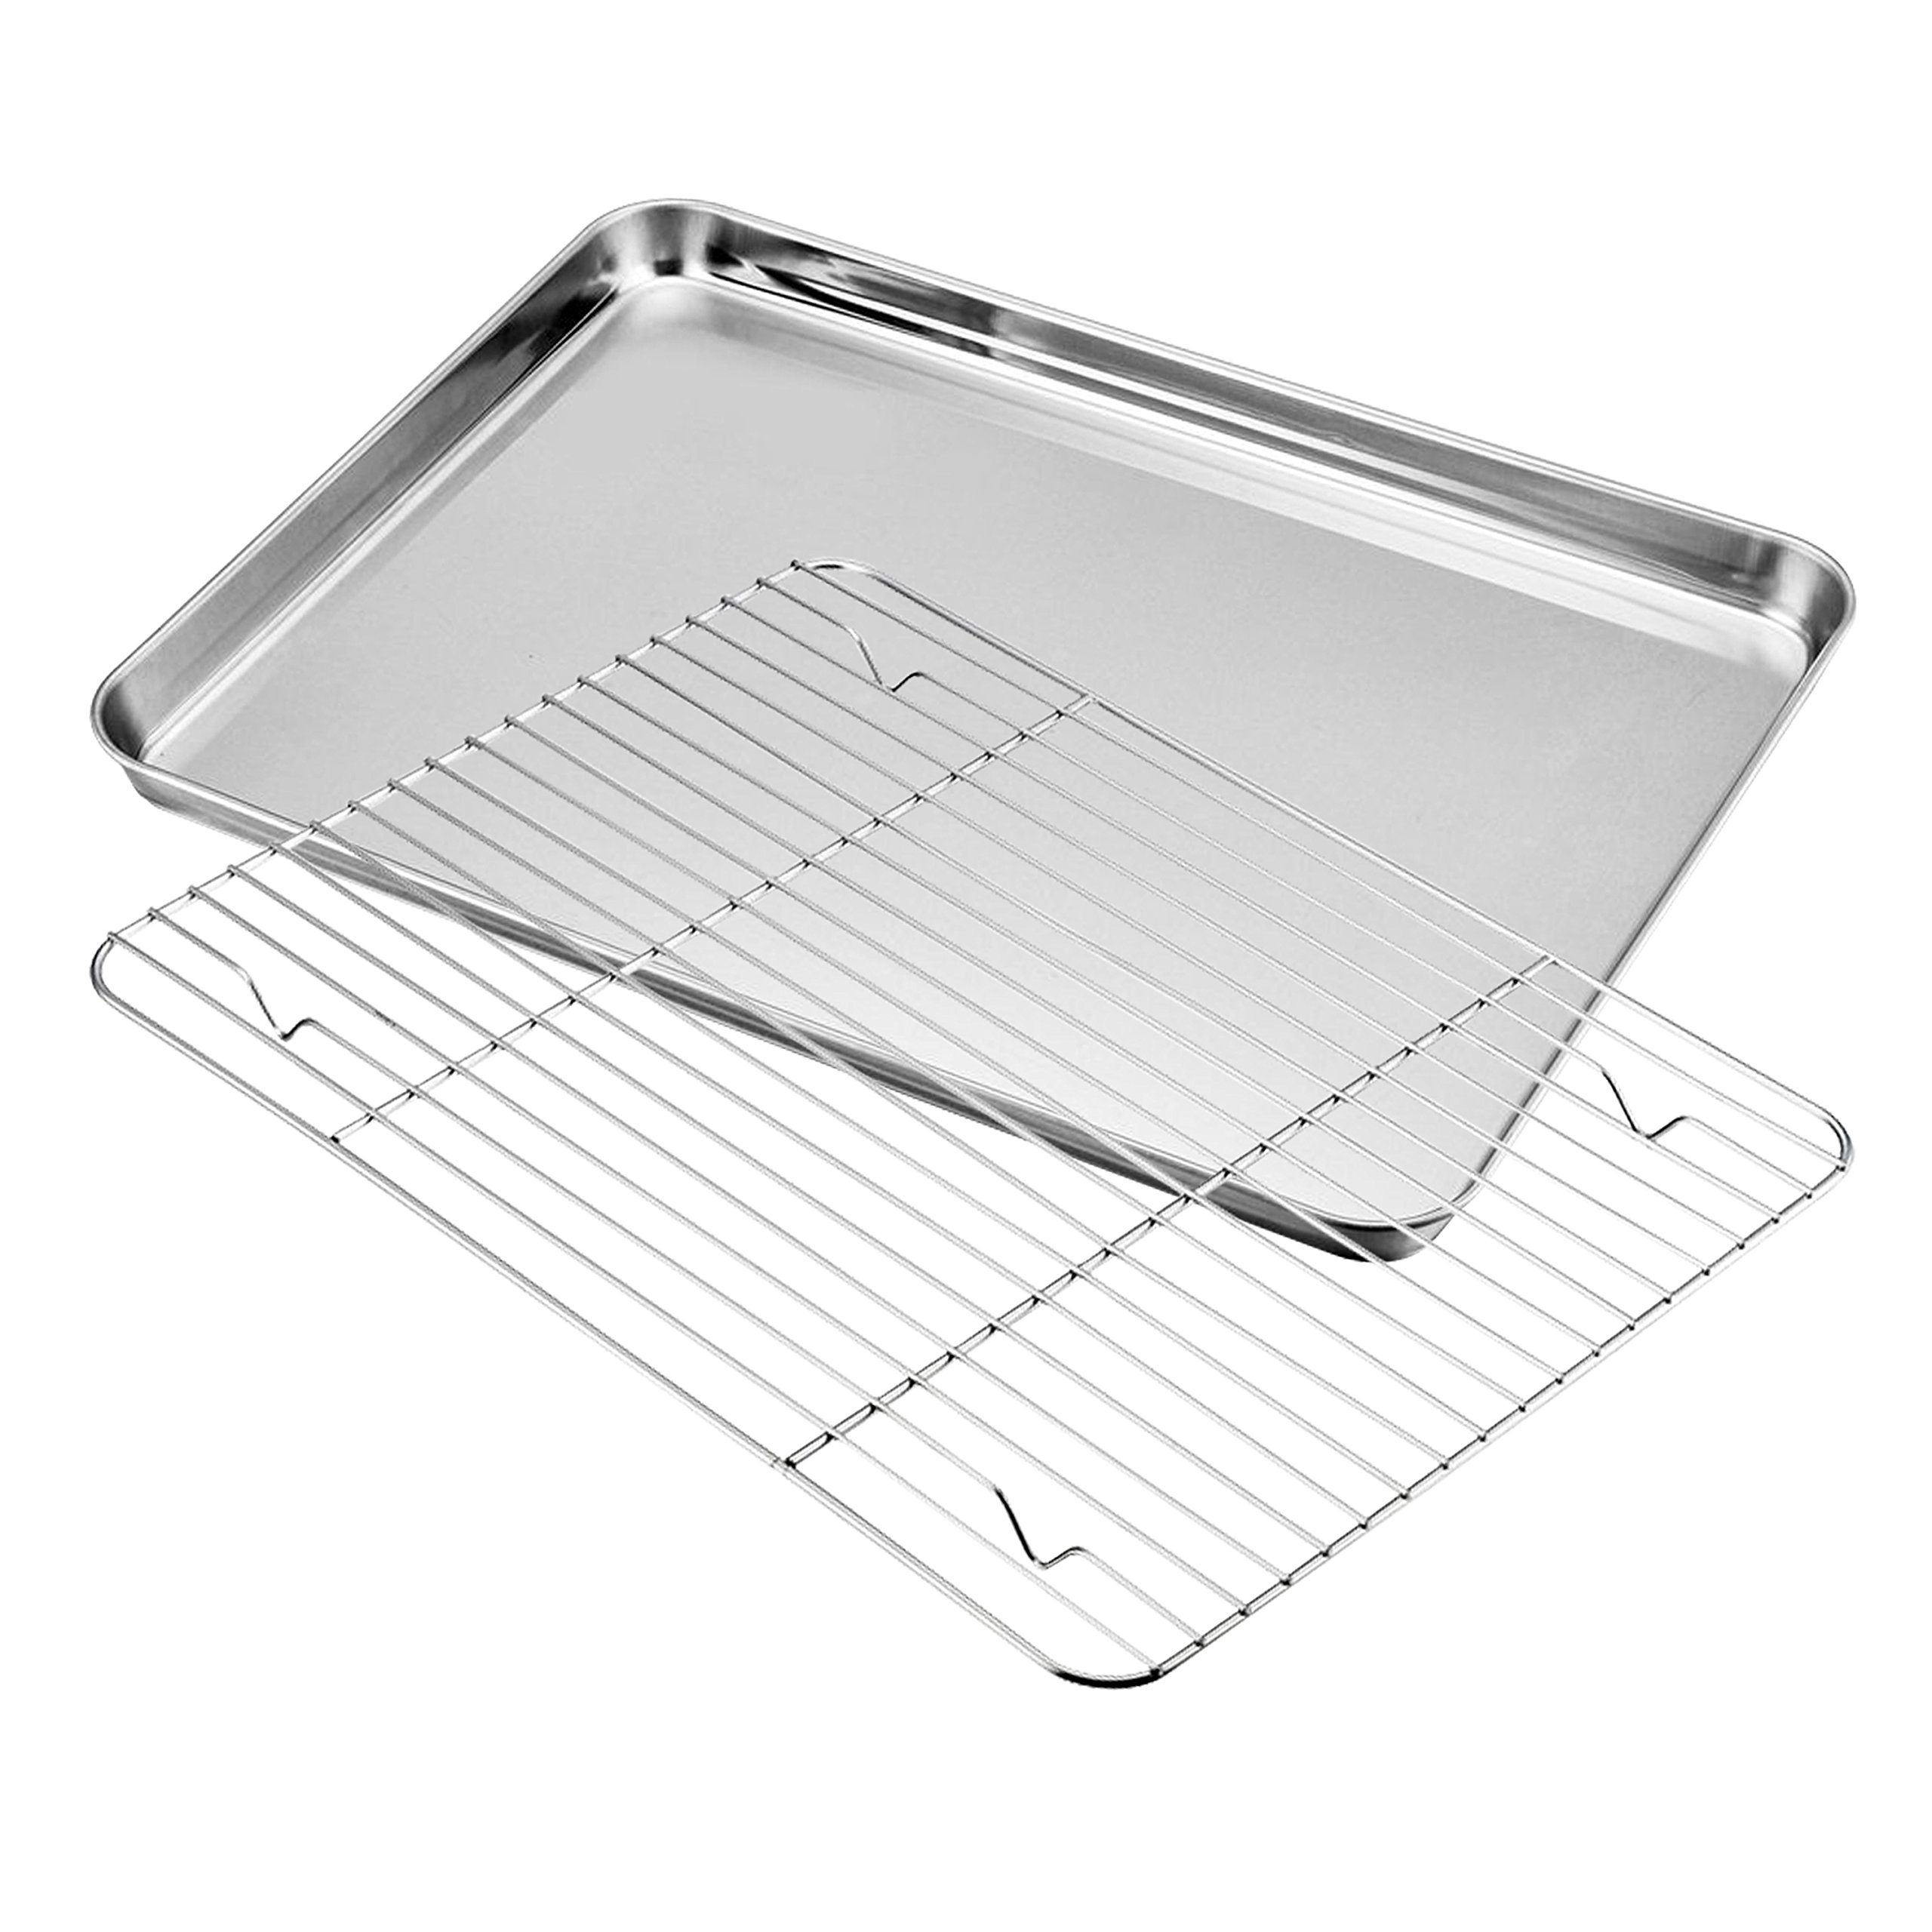 Mike pups Baking sheets Rack Set, Cookie pan Nonstick Cooling Rack & Cookie sheets Rectangle Size 12 x 10 x 1 inch,Stainless Steel & Non Toxic & Healthy,Superior Mirror Finish & Easy Clean (12101)